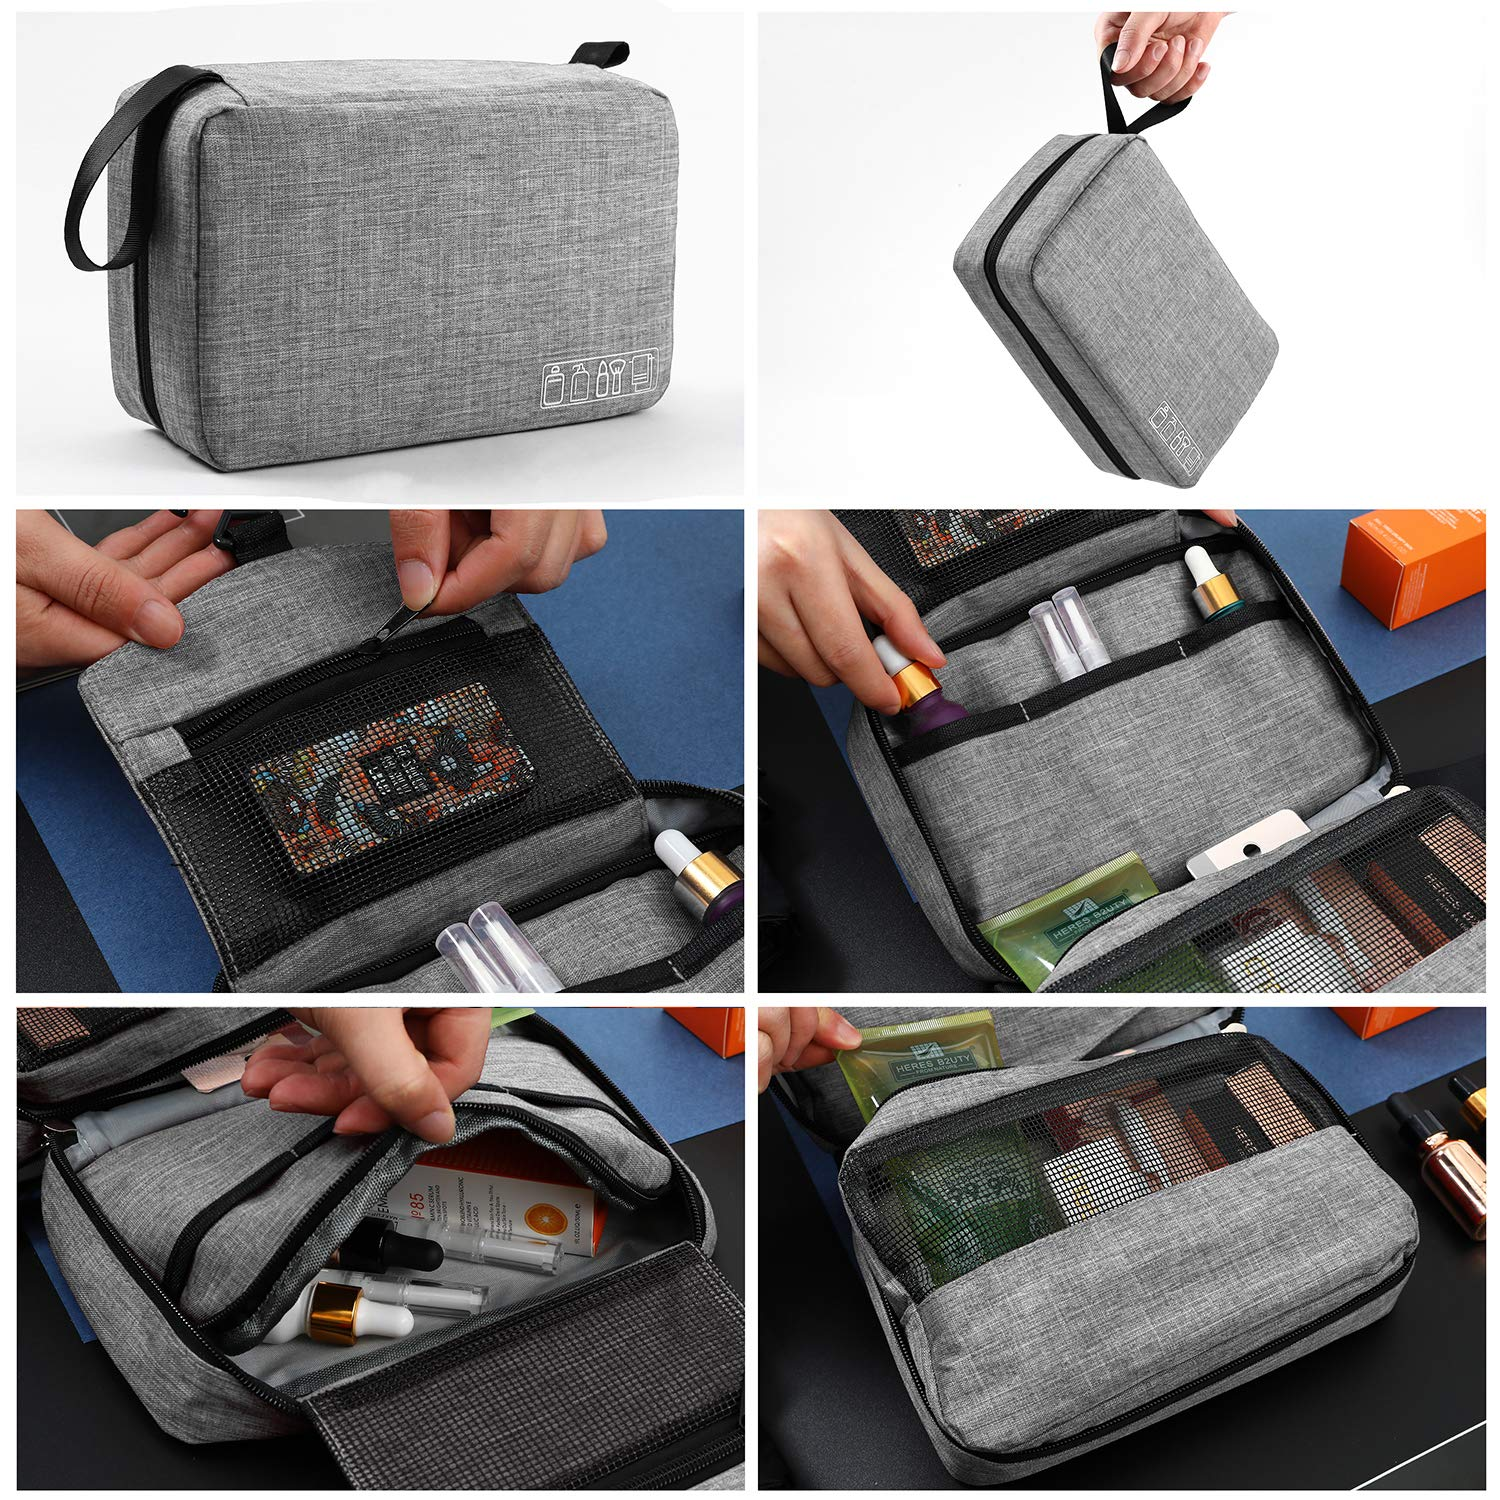 The Travel Toiletry Bag